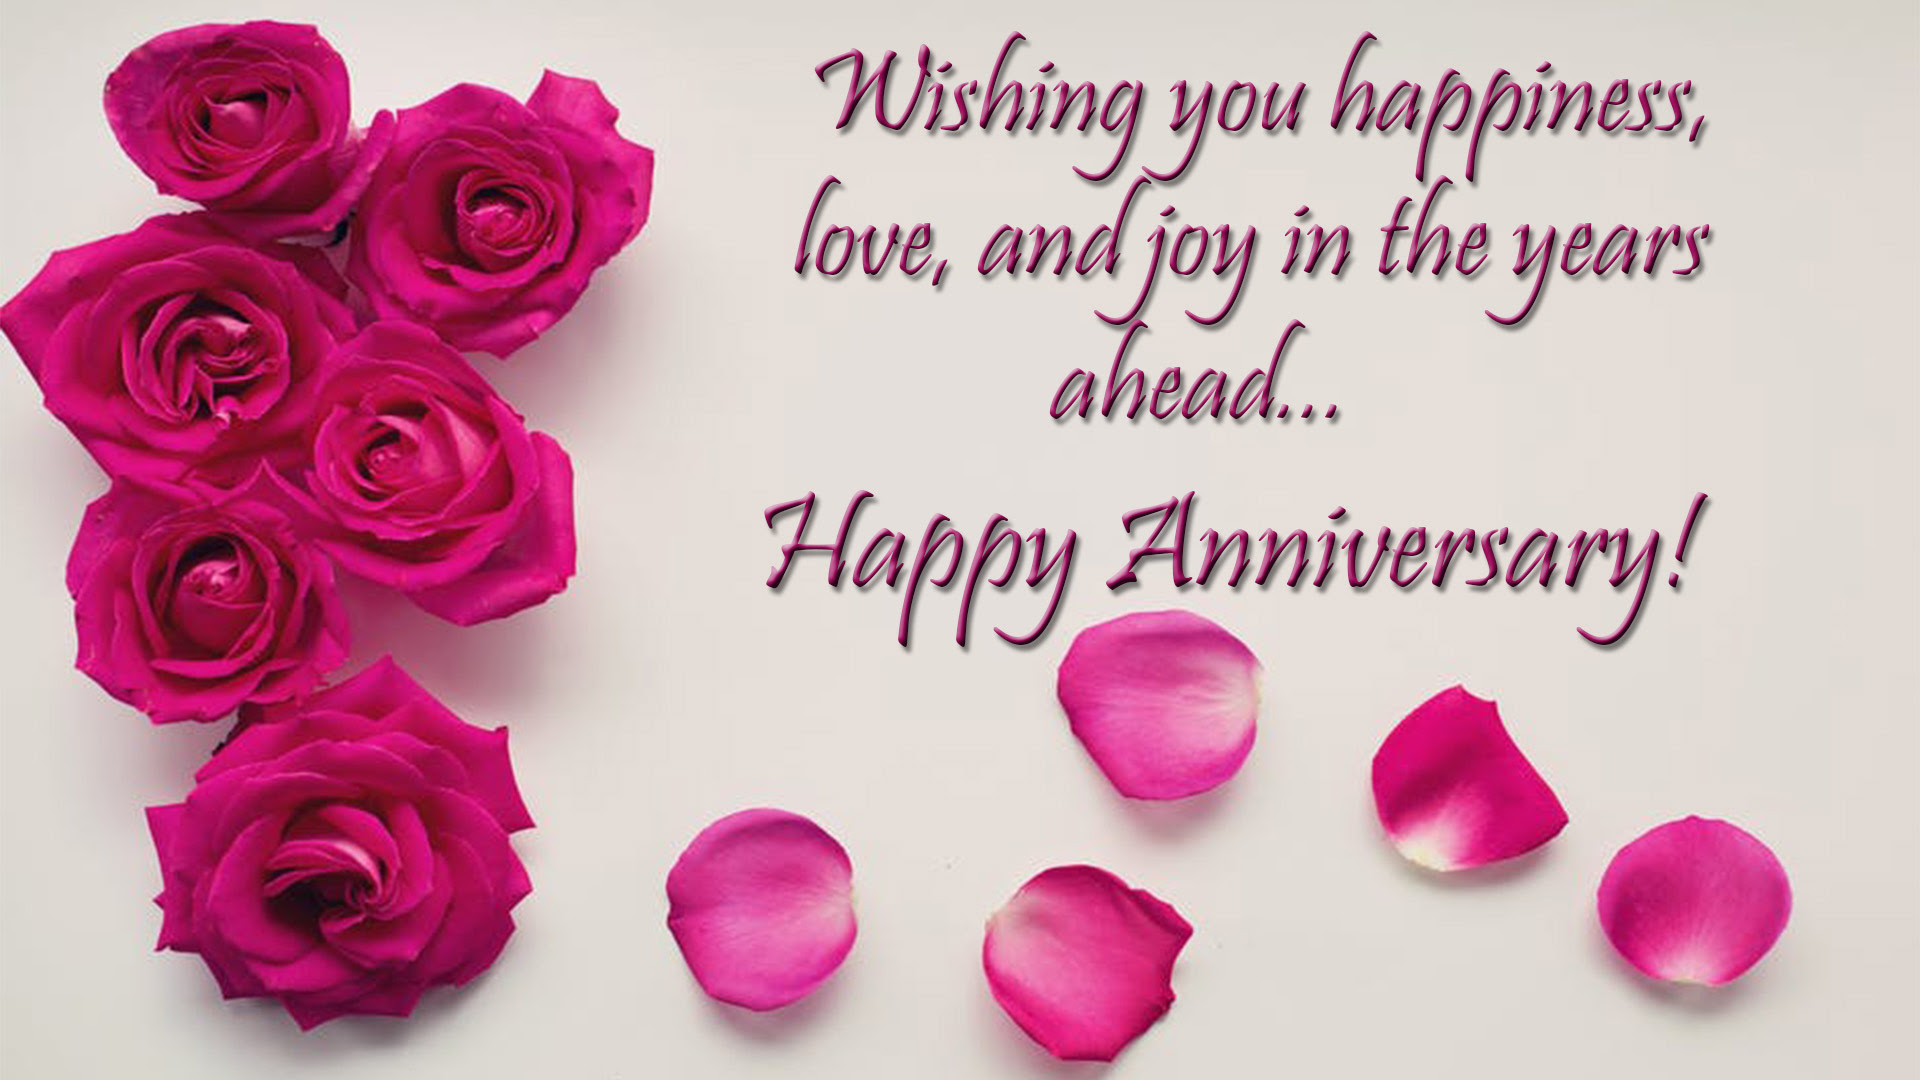 Wedding Anniversary Wishes Greeting Cards Images Free Download